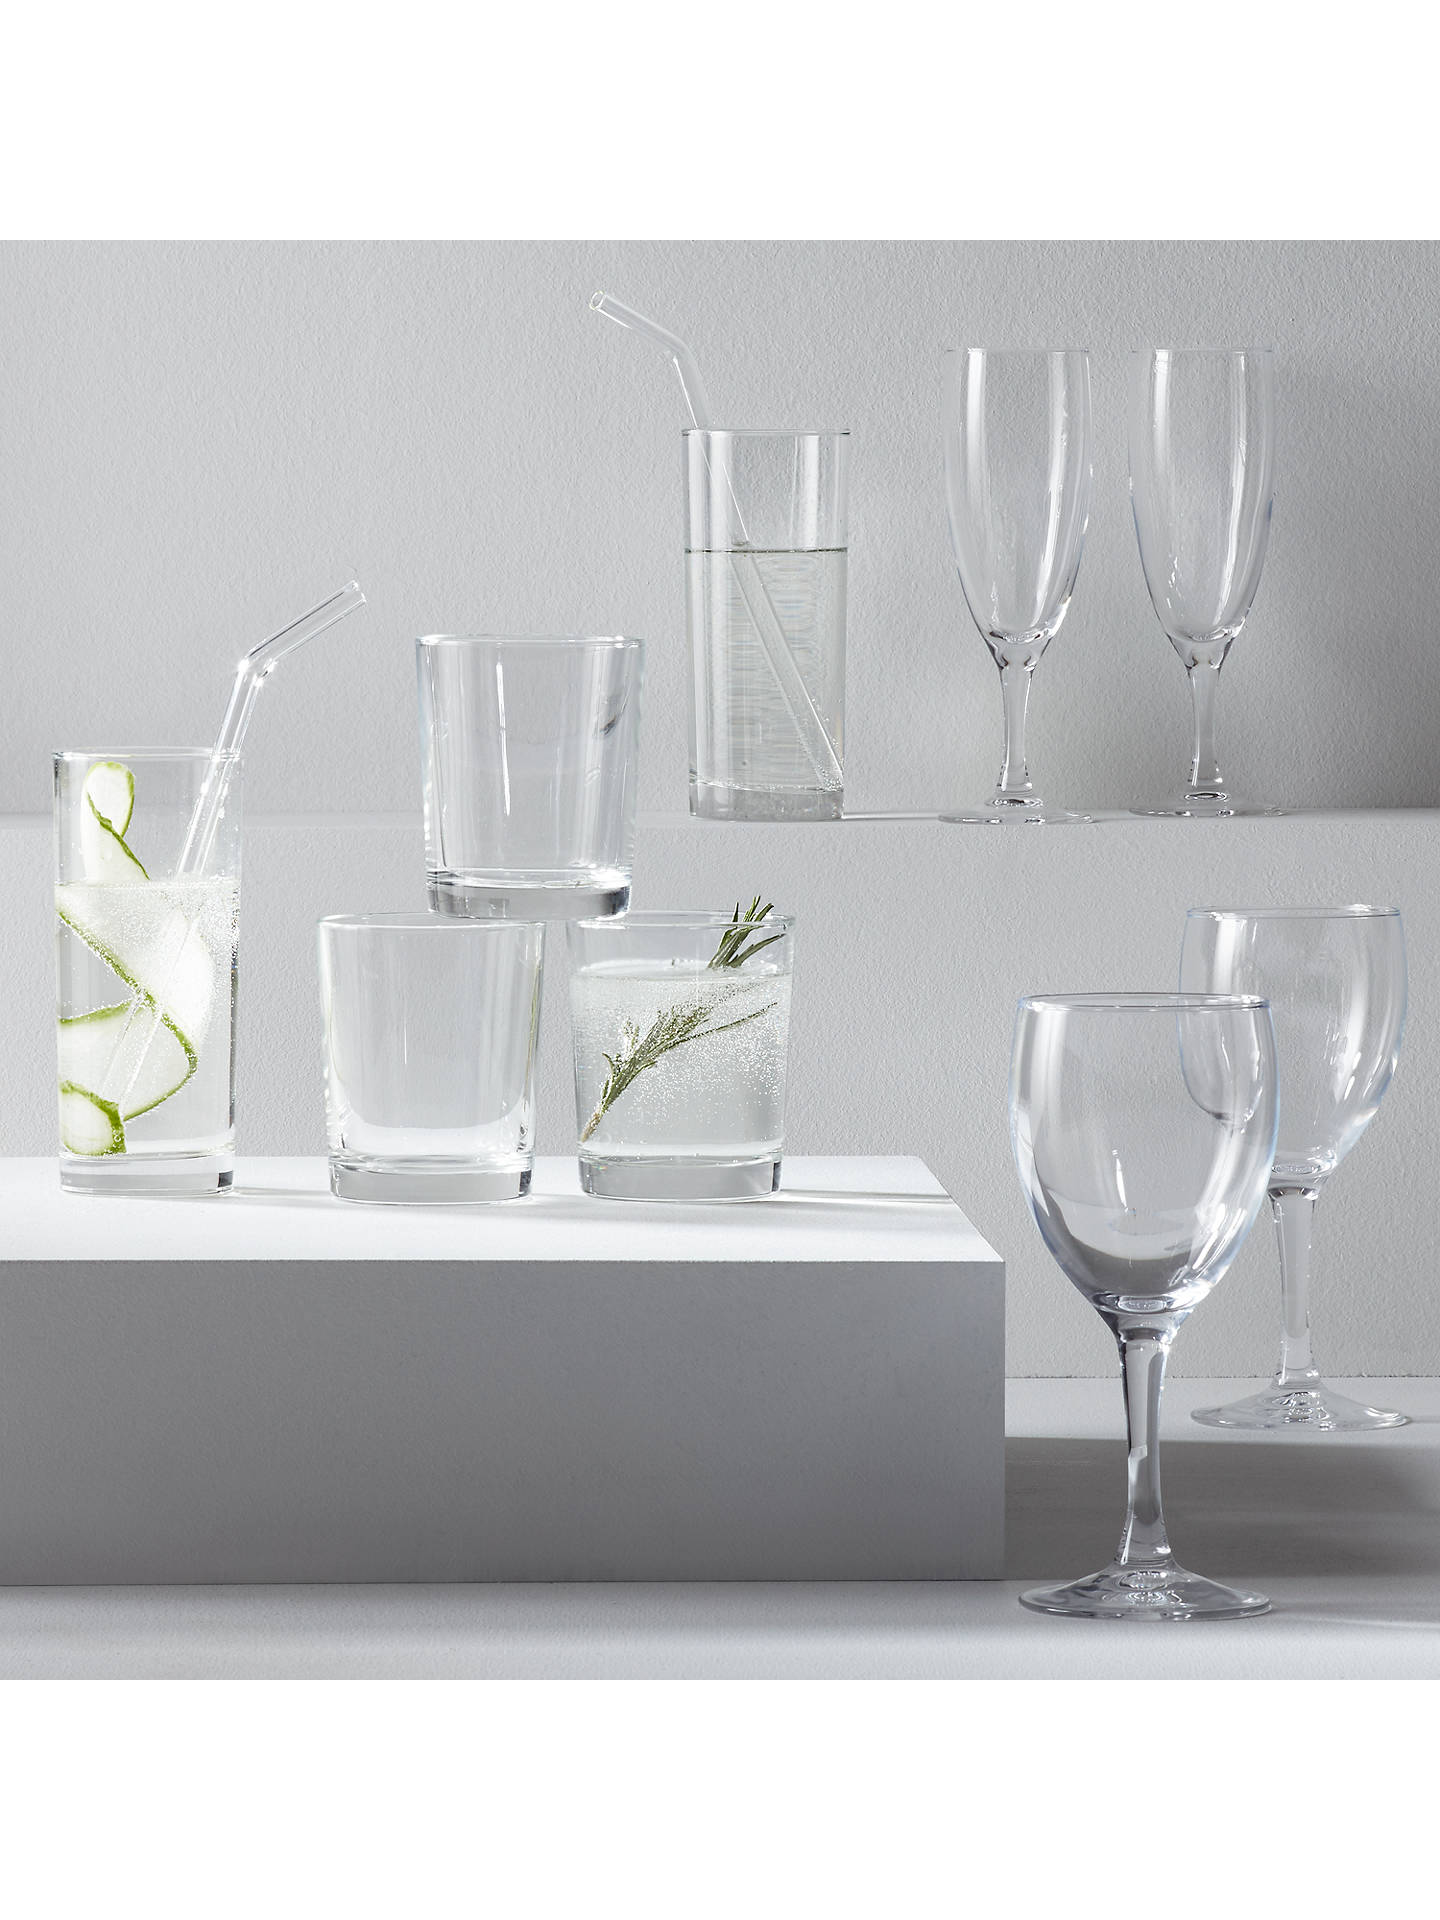 BuyJohn Lewis & Partners The Basics Tumbler, 260ml, Set of 4 Online at johnlewis.com